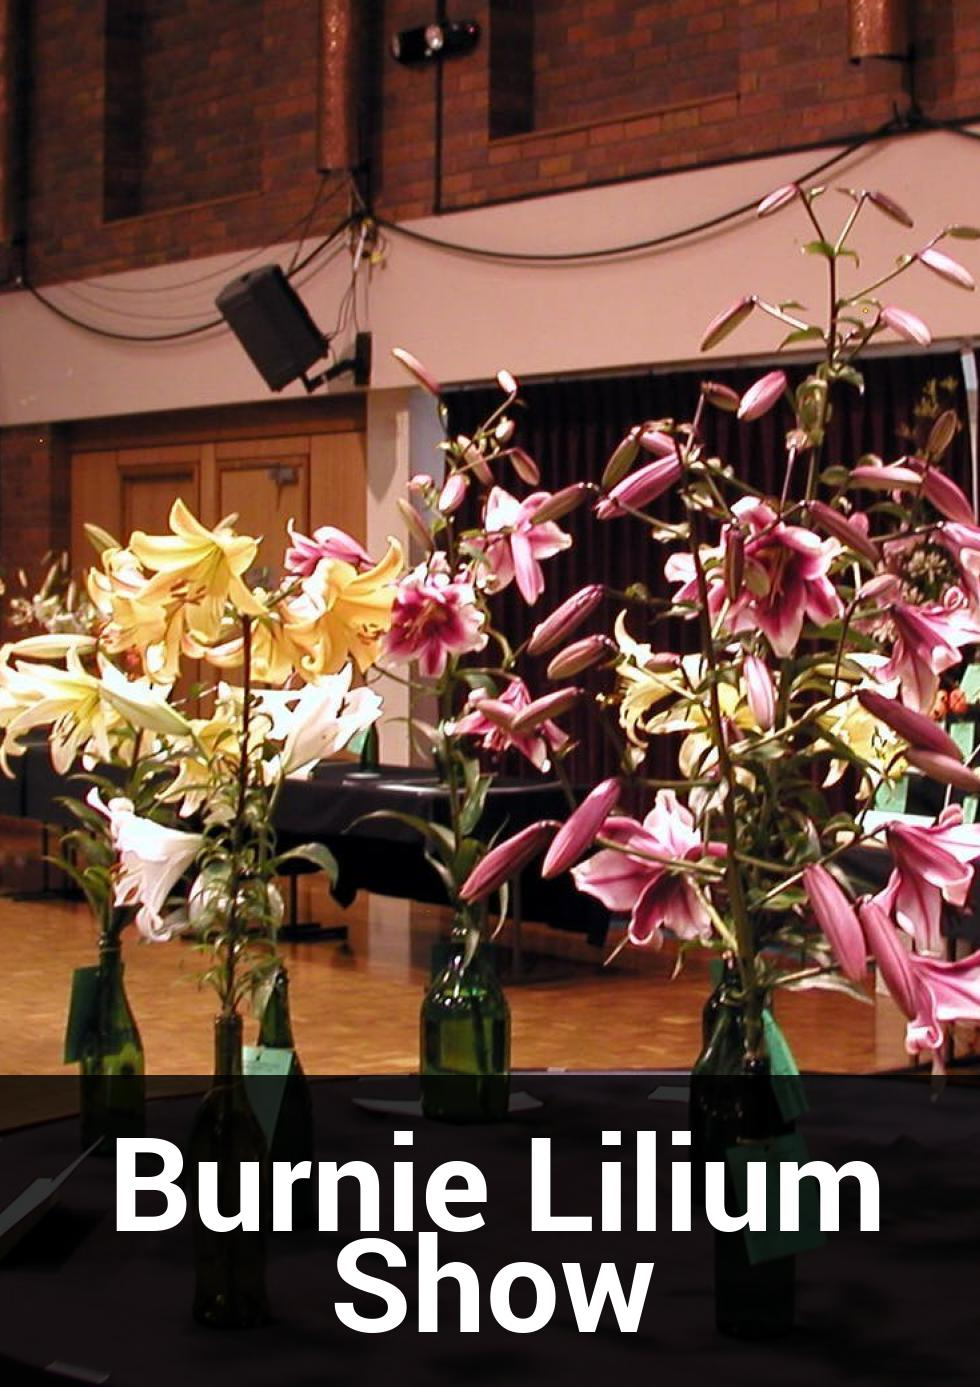 Burnie Lilium Show at Burnie Arts and Function Centre